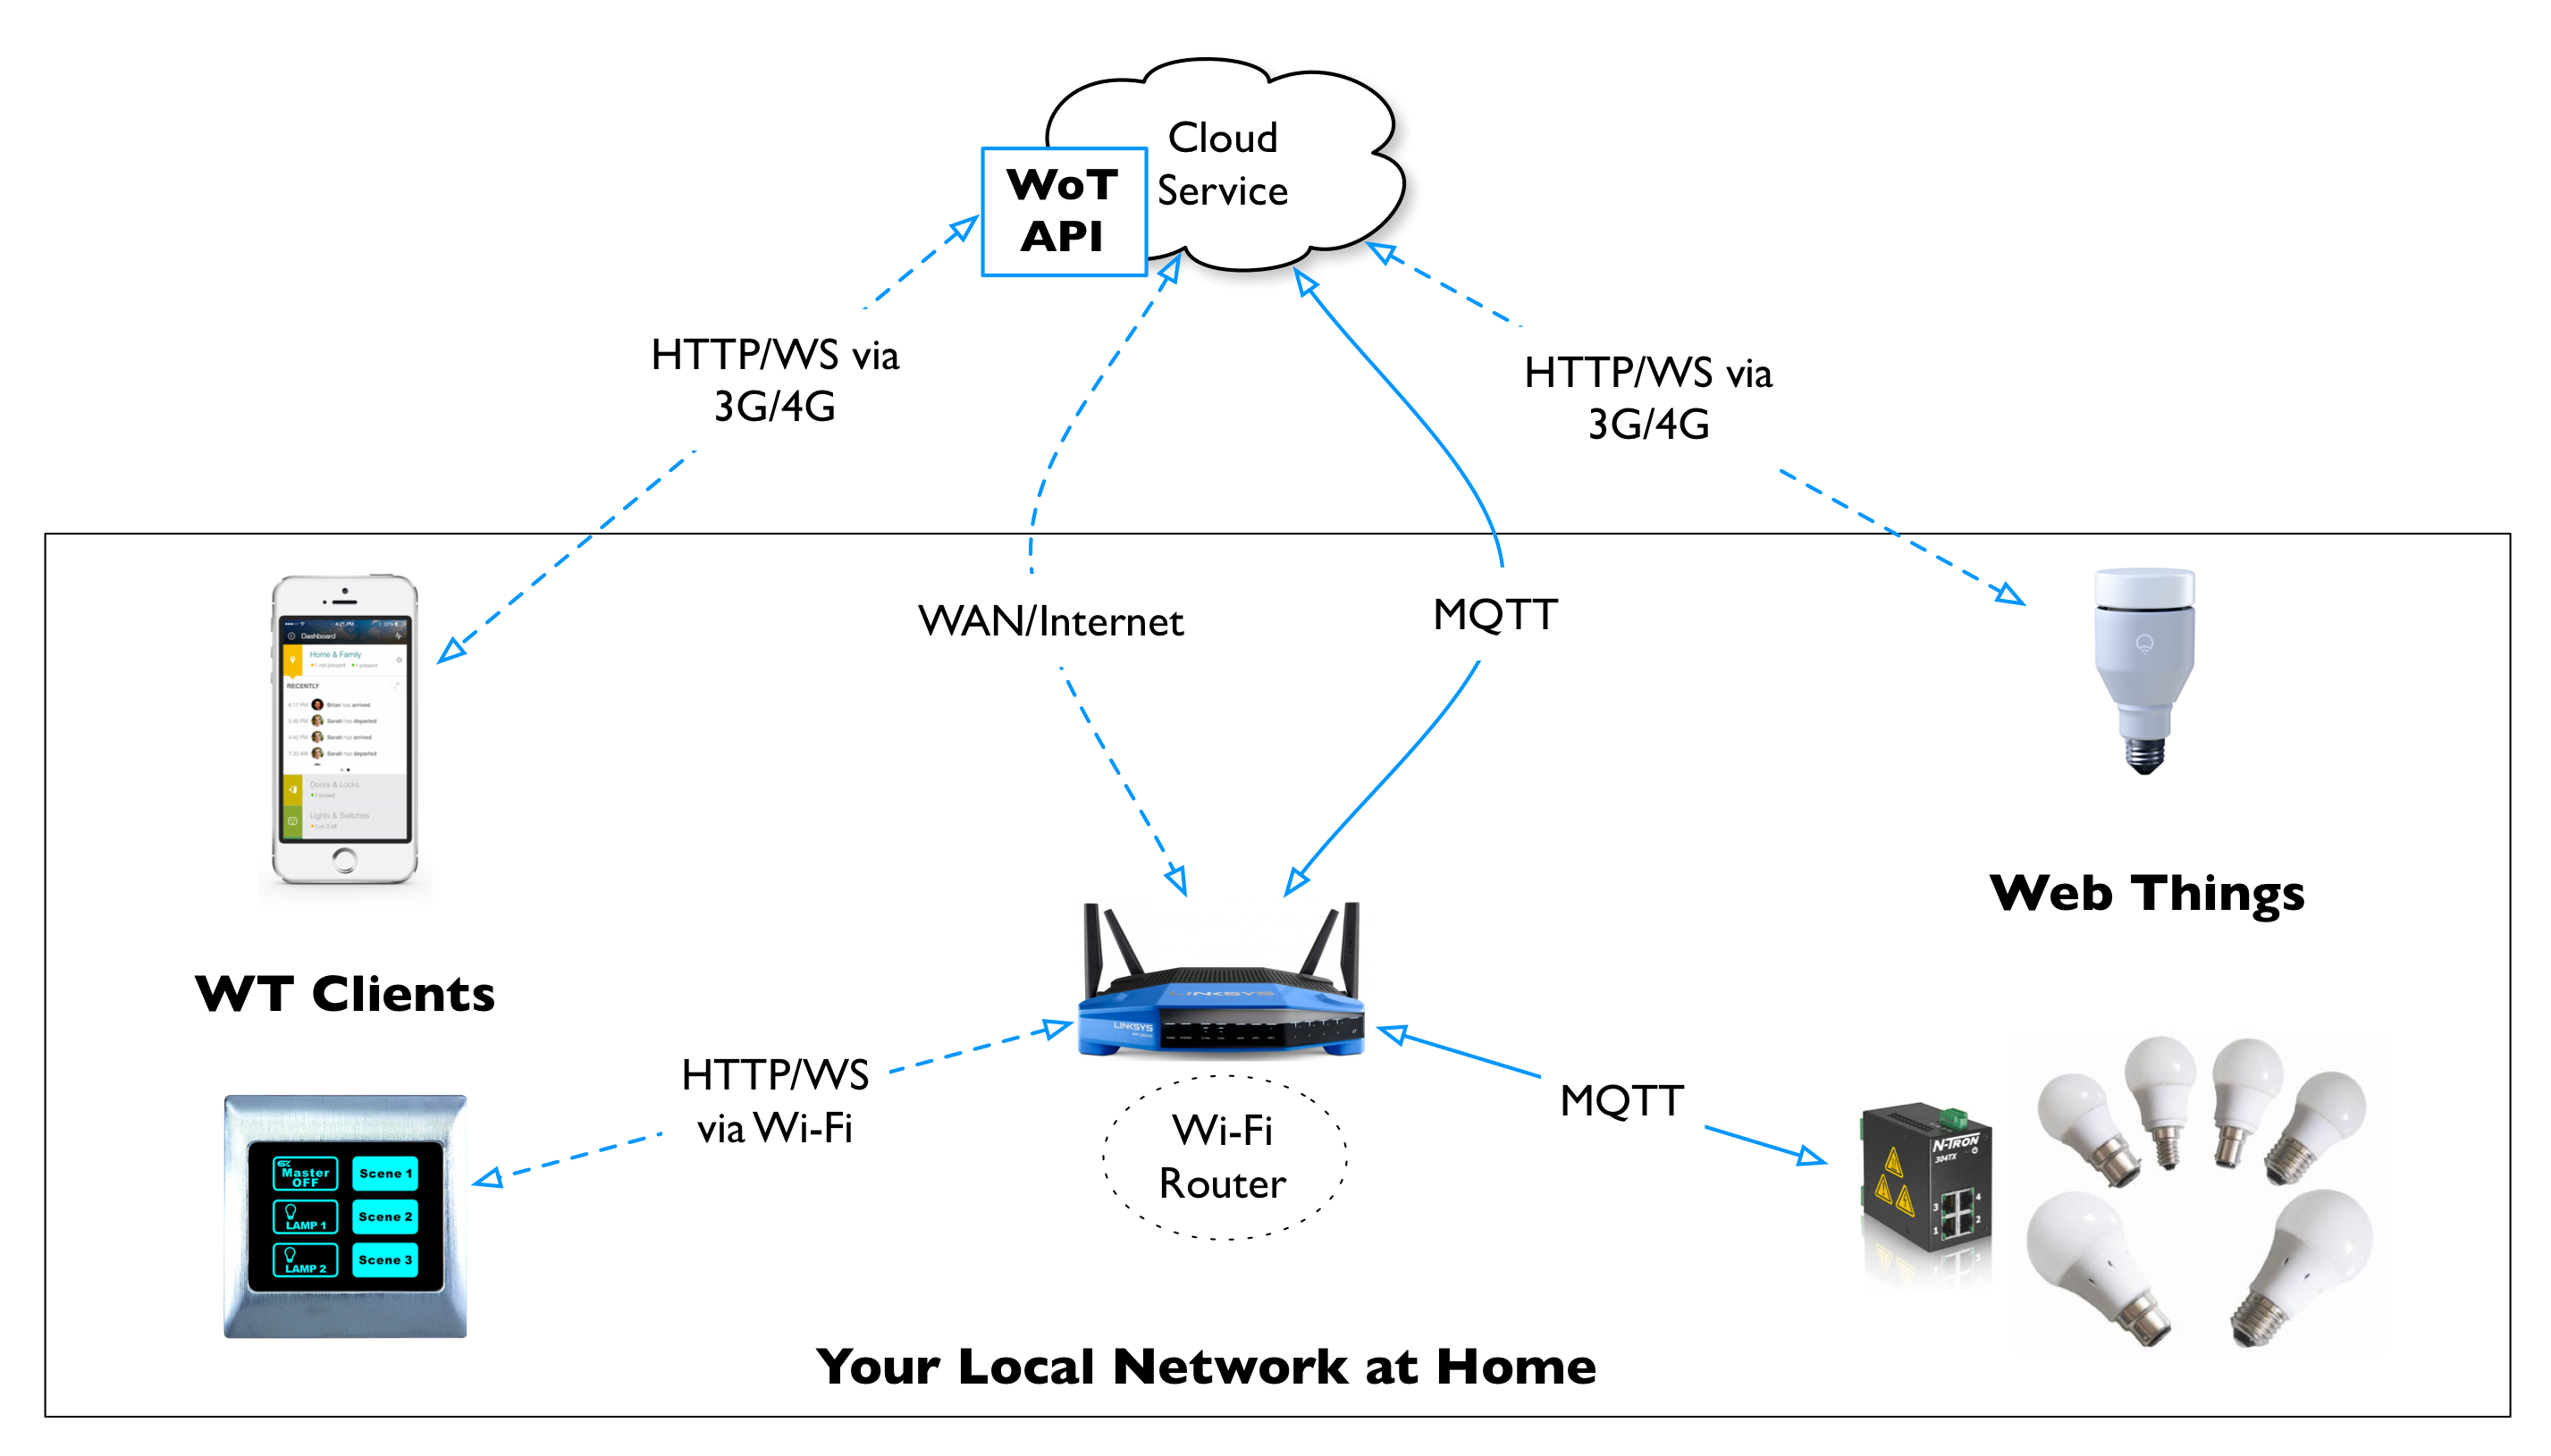 A cloud service may expose the Web API of a Web Thing for Clients to connect to it